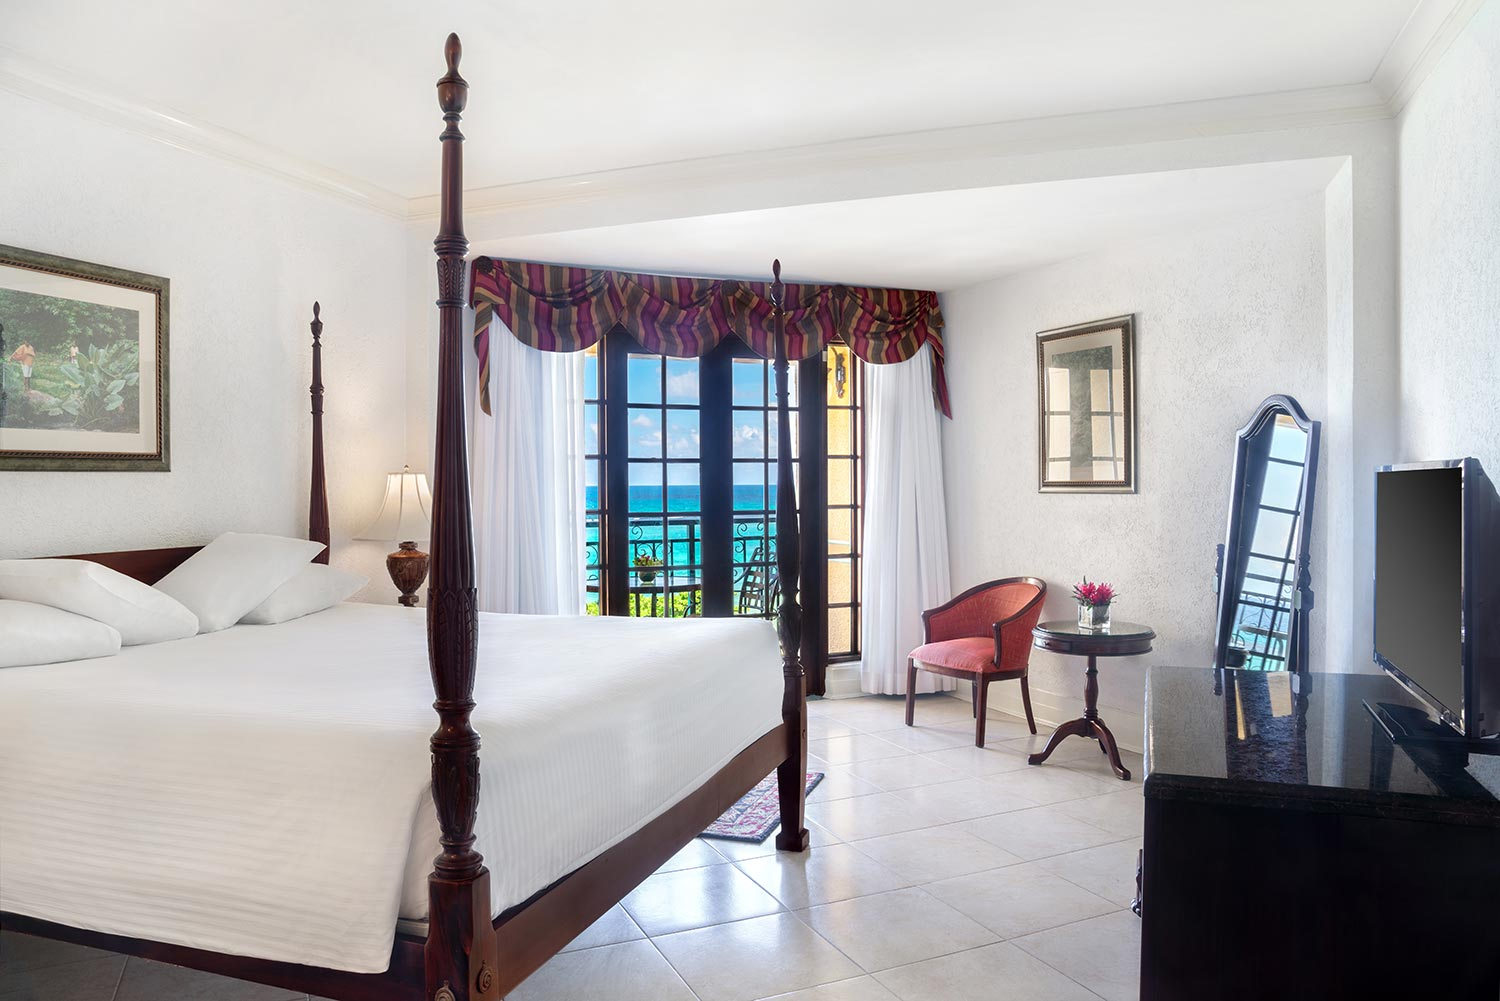 Diamond Ocean View Concierge  Indulge in personalized service paired with picturesque views. Concierge: 7:00 am - 10:00 pm  Starting at $267.00/per night